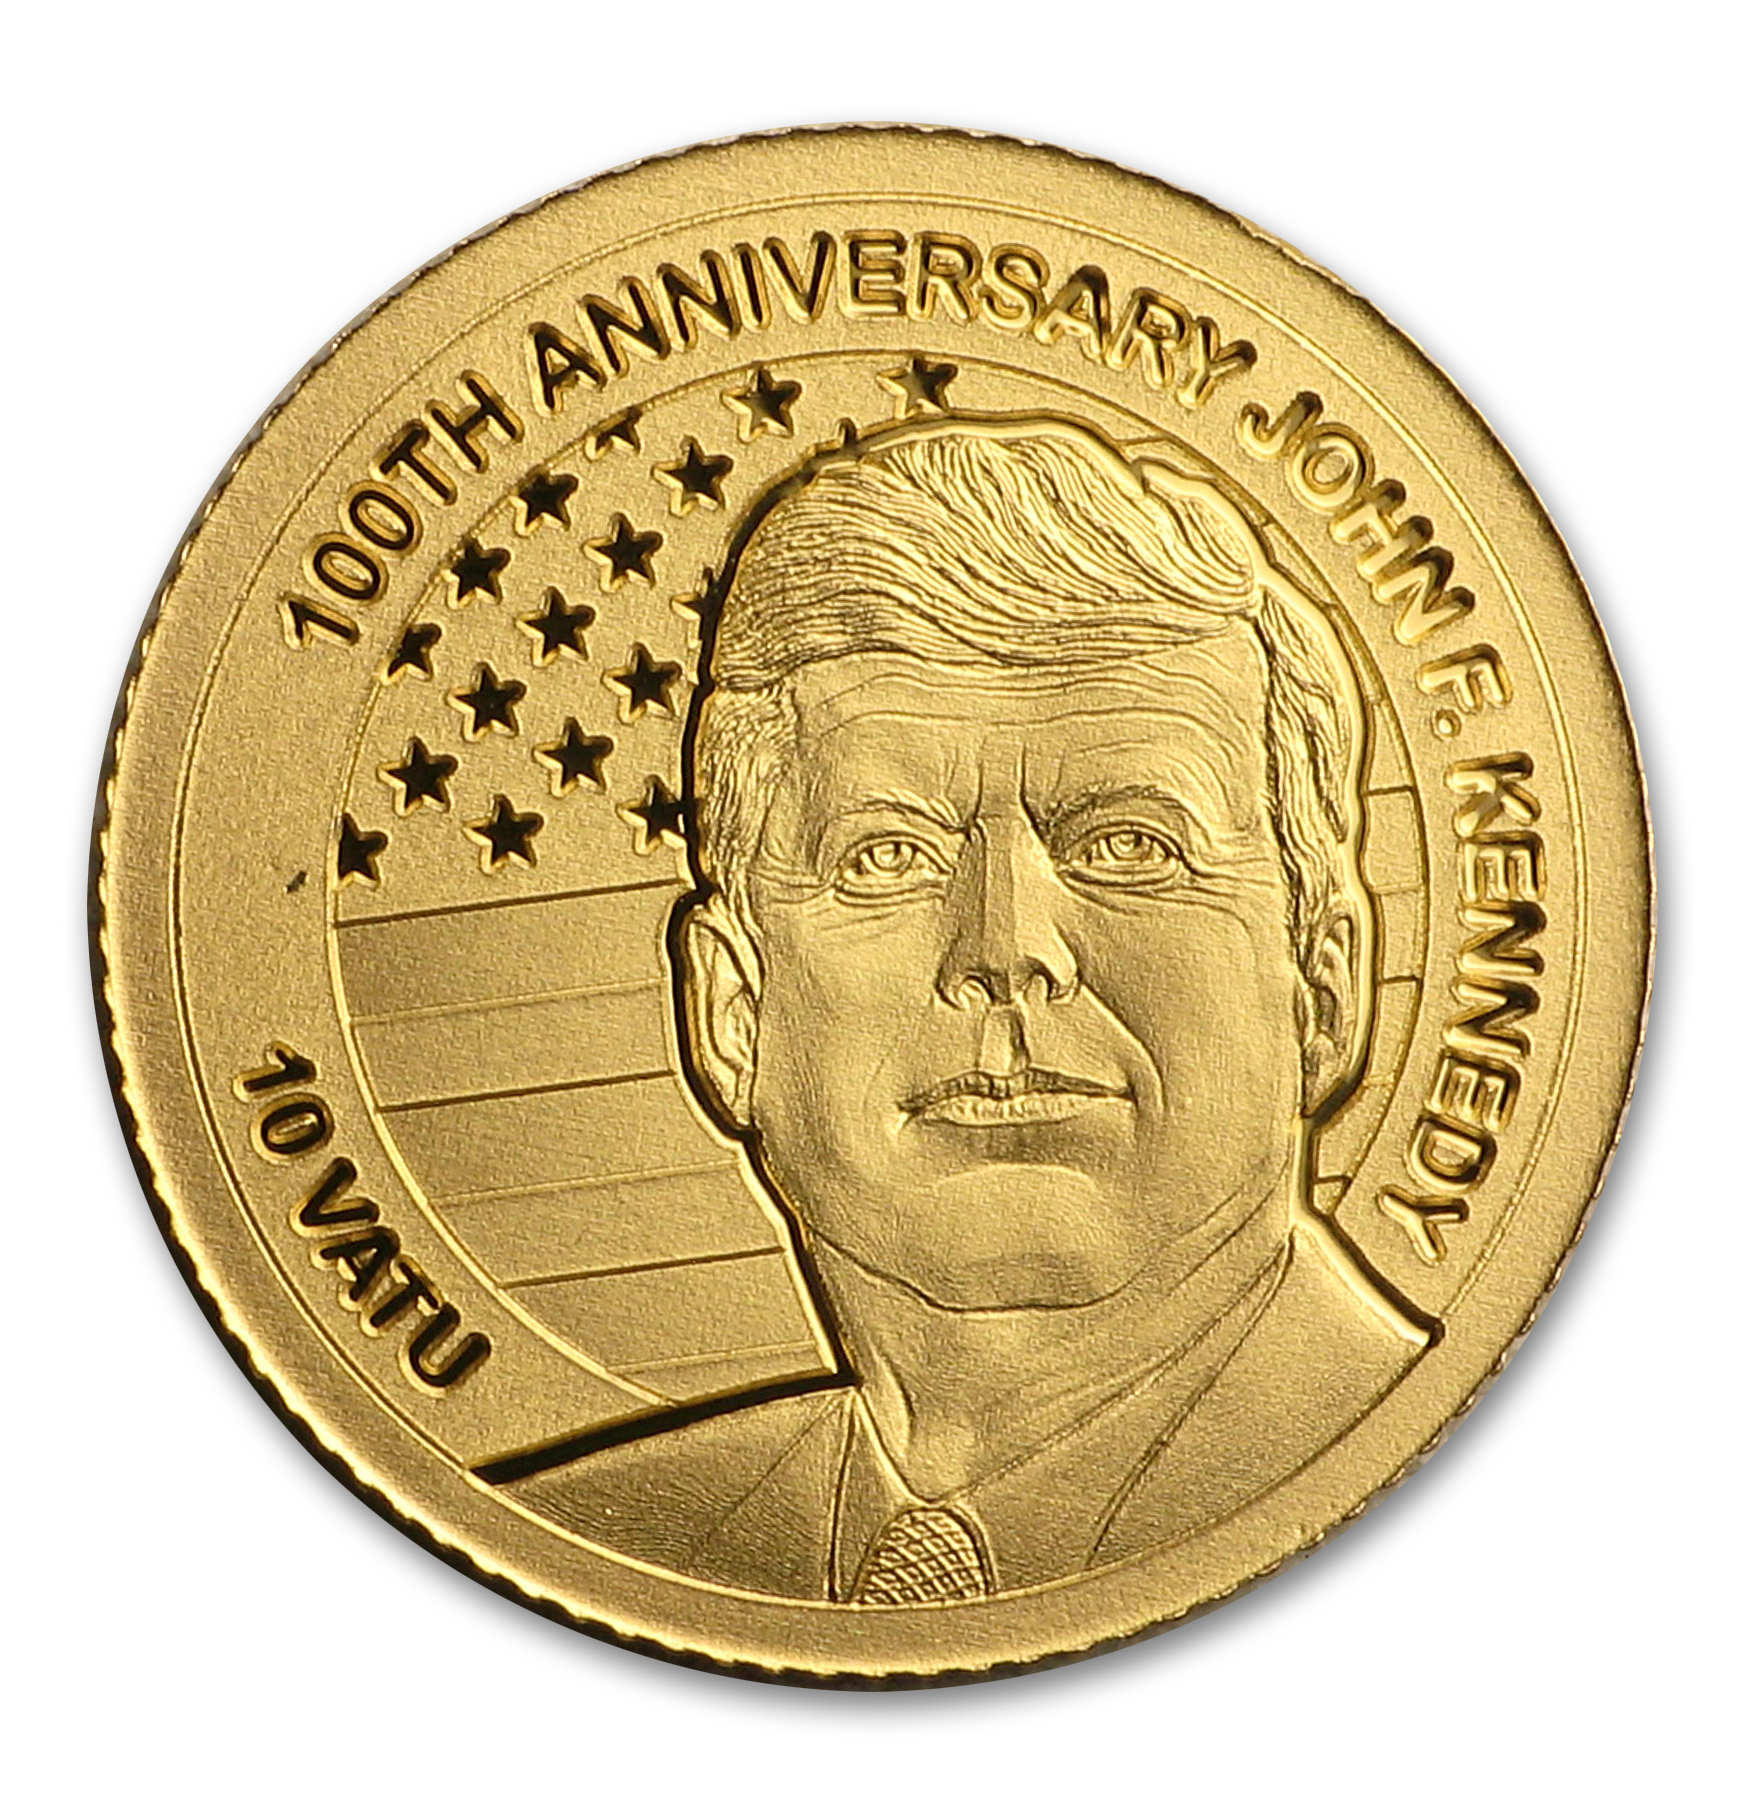 2017 Vanuatu 1/2 gram Gold 100th Anniversary of John F. Kennedy